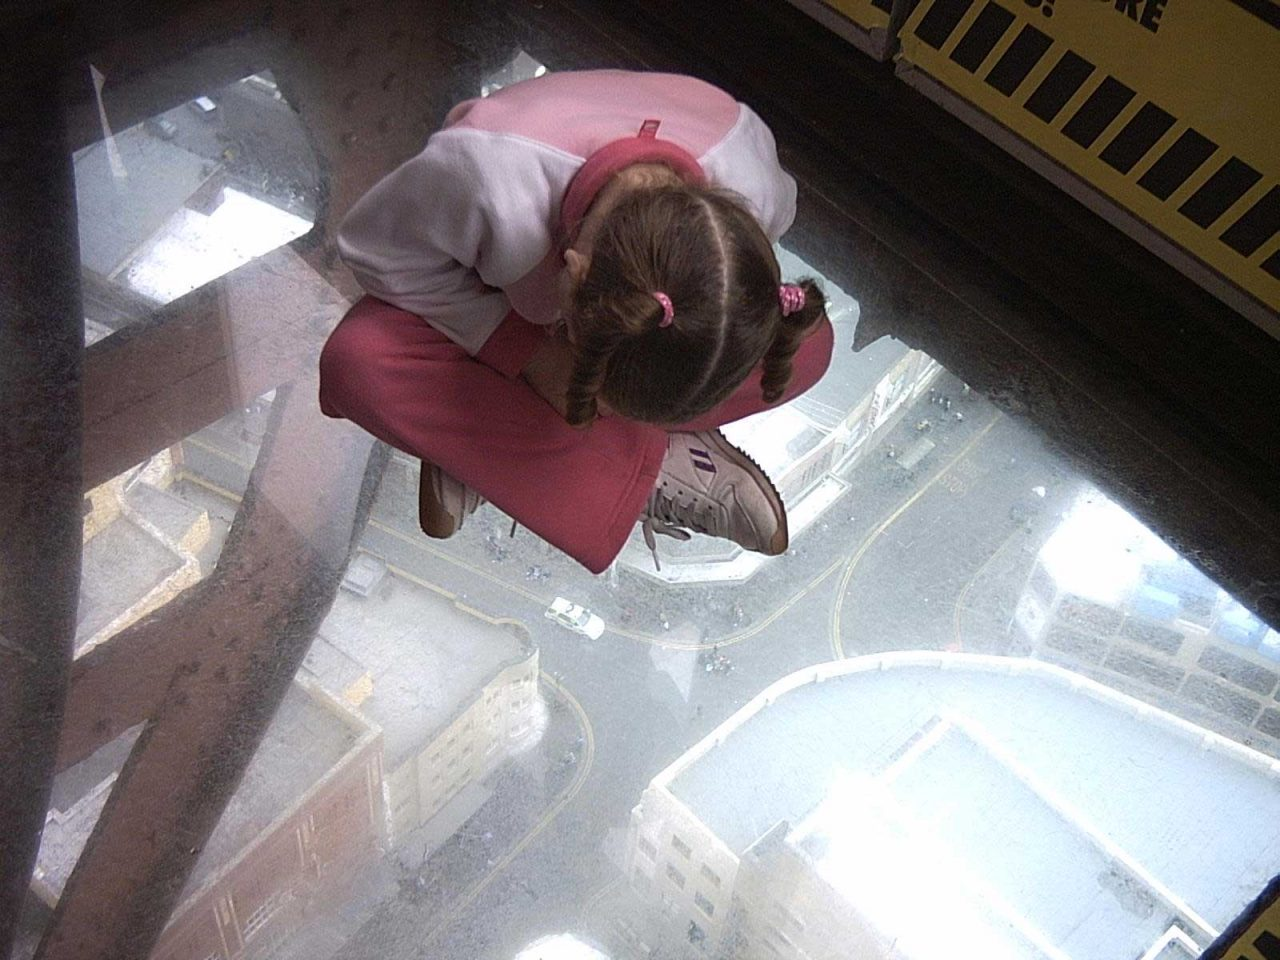 Sitting on the glass floor on the Blackpool Tower Eye observation deck at the top on the Blackpool Tower (Photo: Neil Gray)